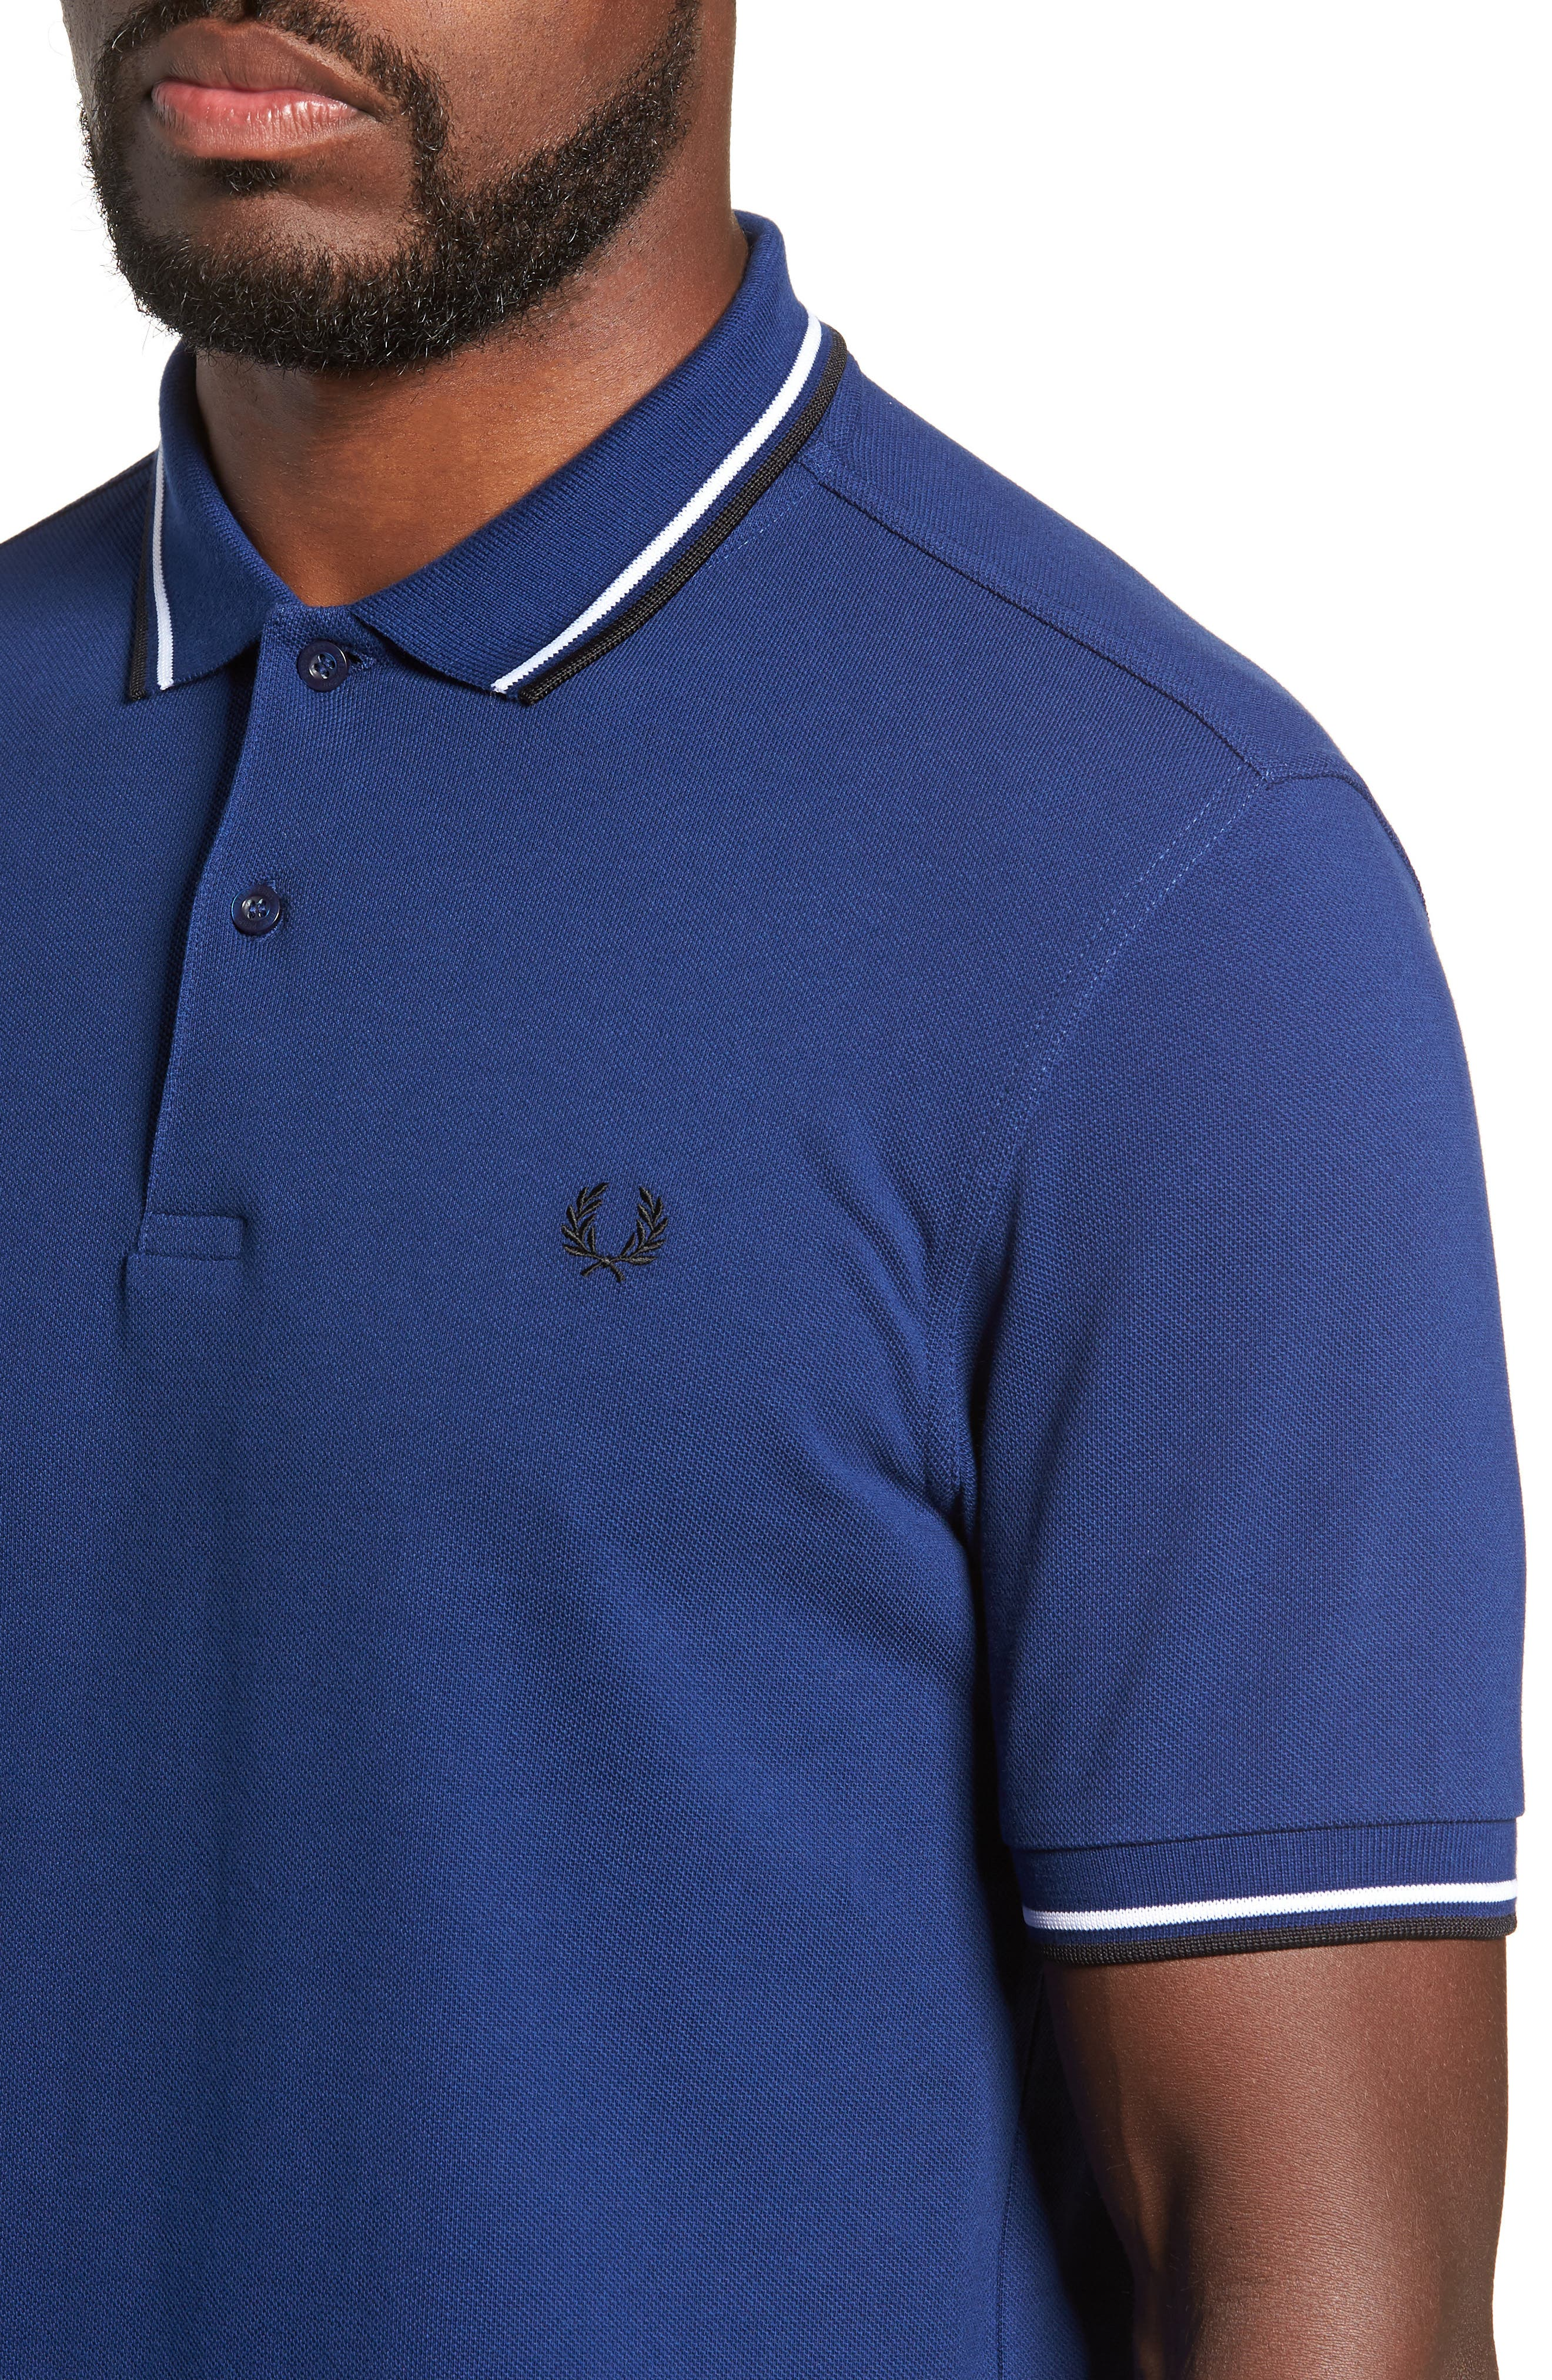 Extra Trim Fit Twin Tipped Piqué Polo,                             Alternate thumbnail 4, color,                             MEDIEVAL BLUE / WHITE / BLACK